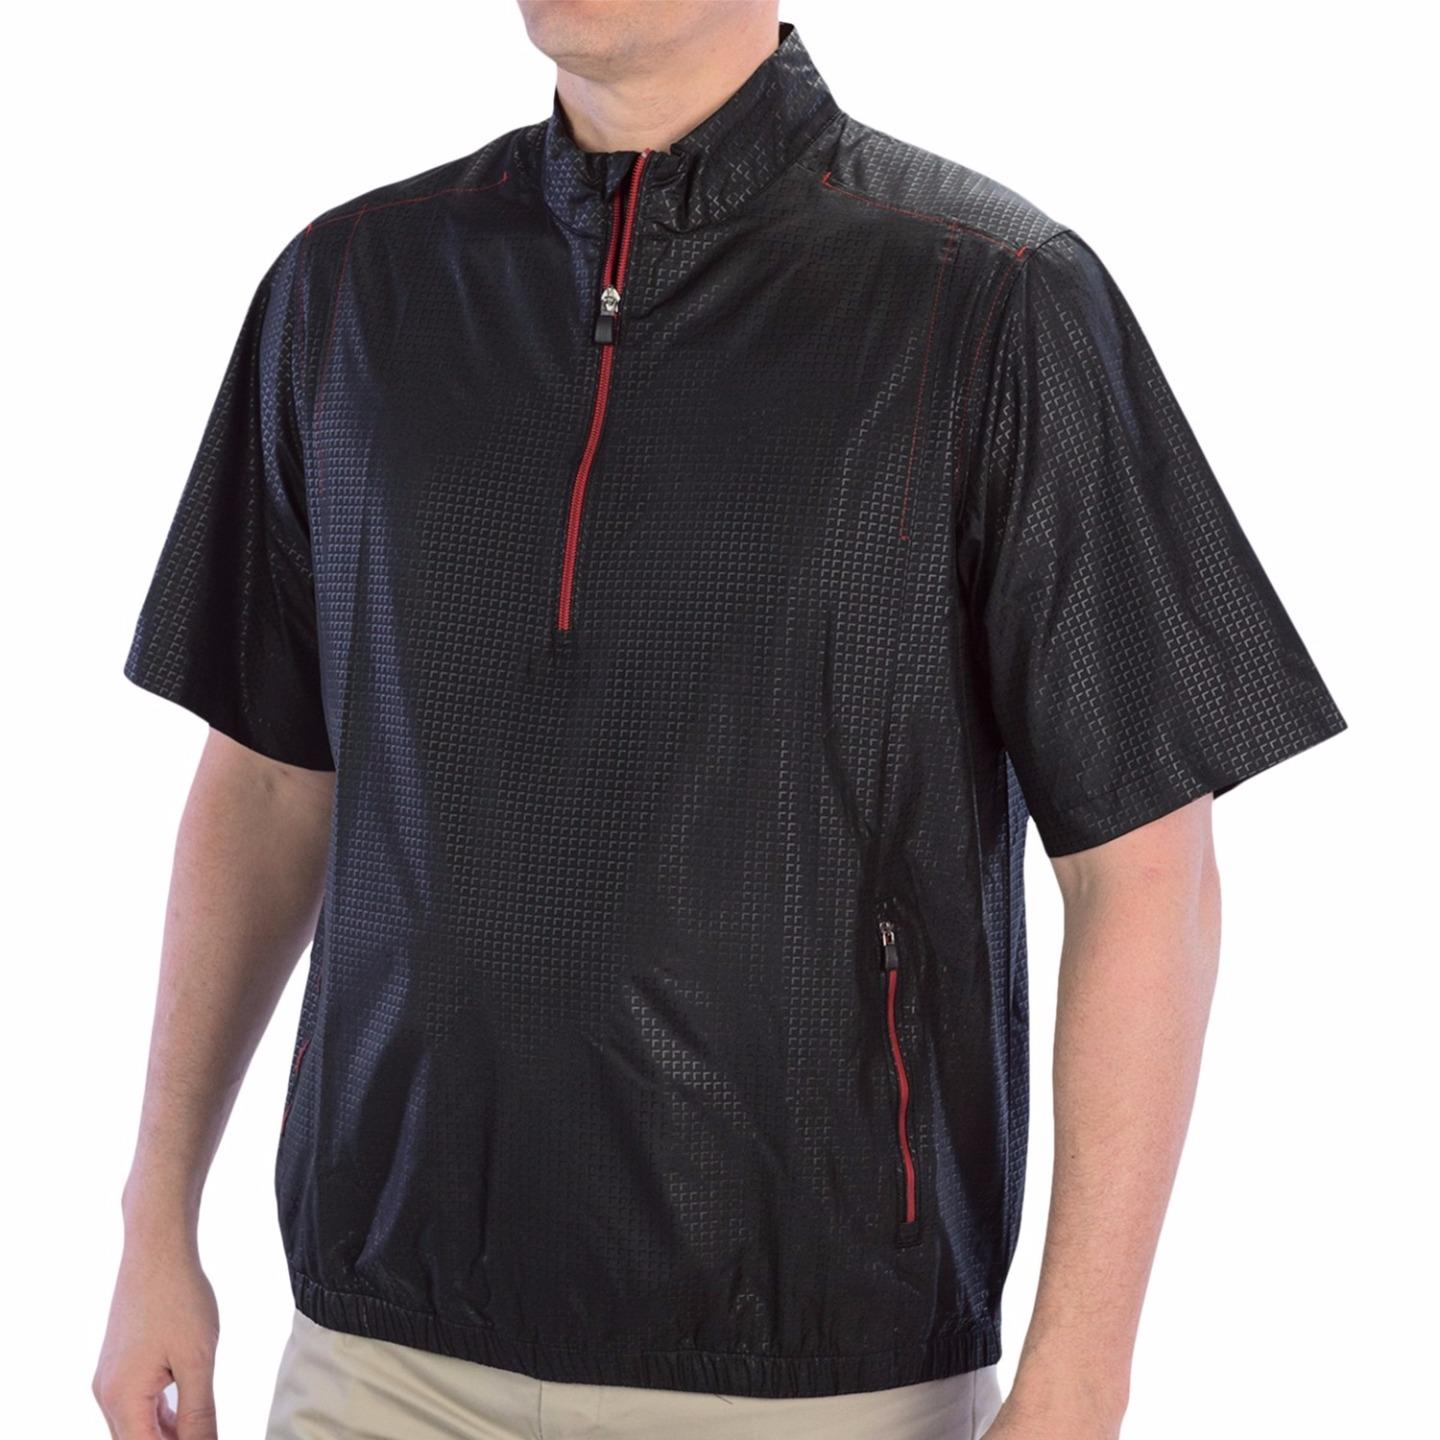 Adidas golf clima proof men 39 s windbreaker shirt 65 nwt for Adidas golf rain shirt